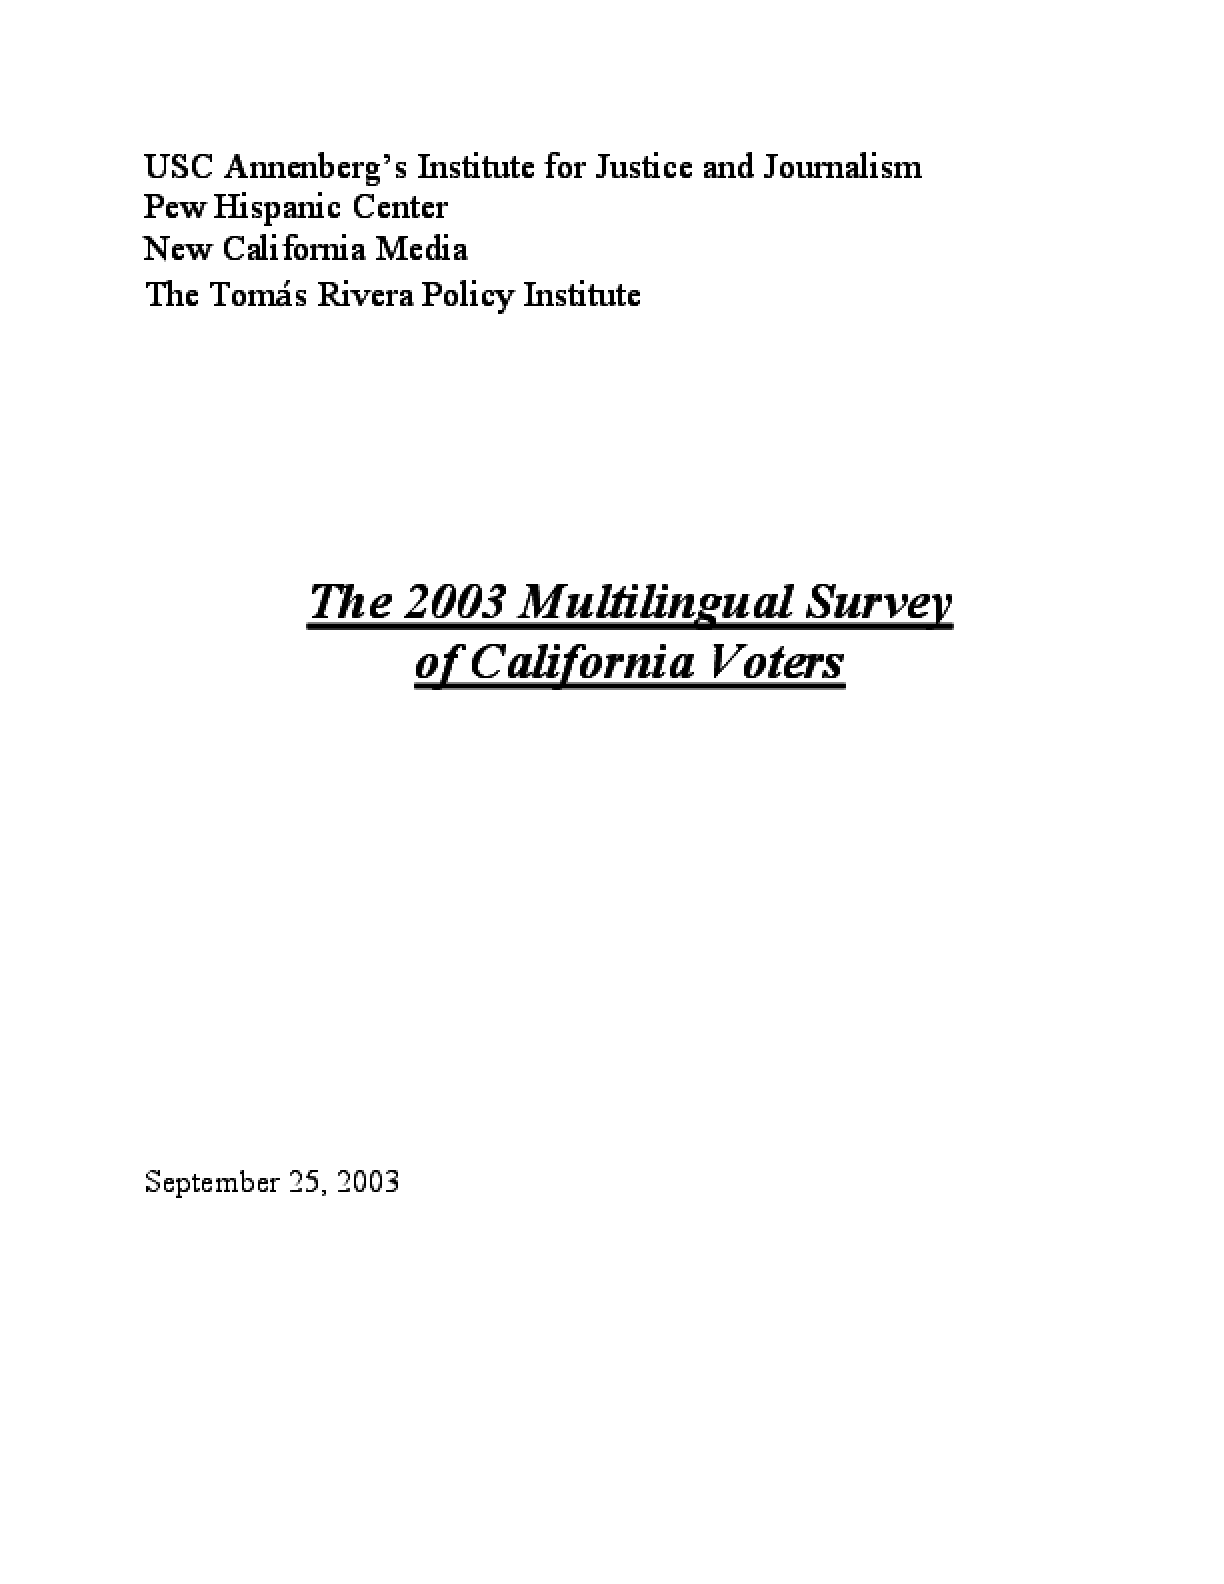 2003 Multilingual Survey of California Voters